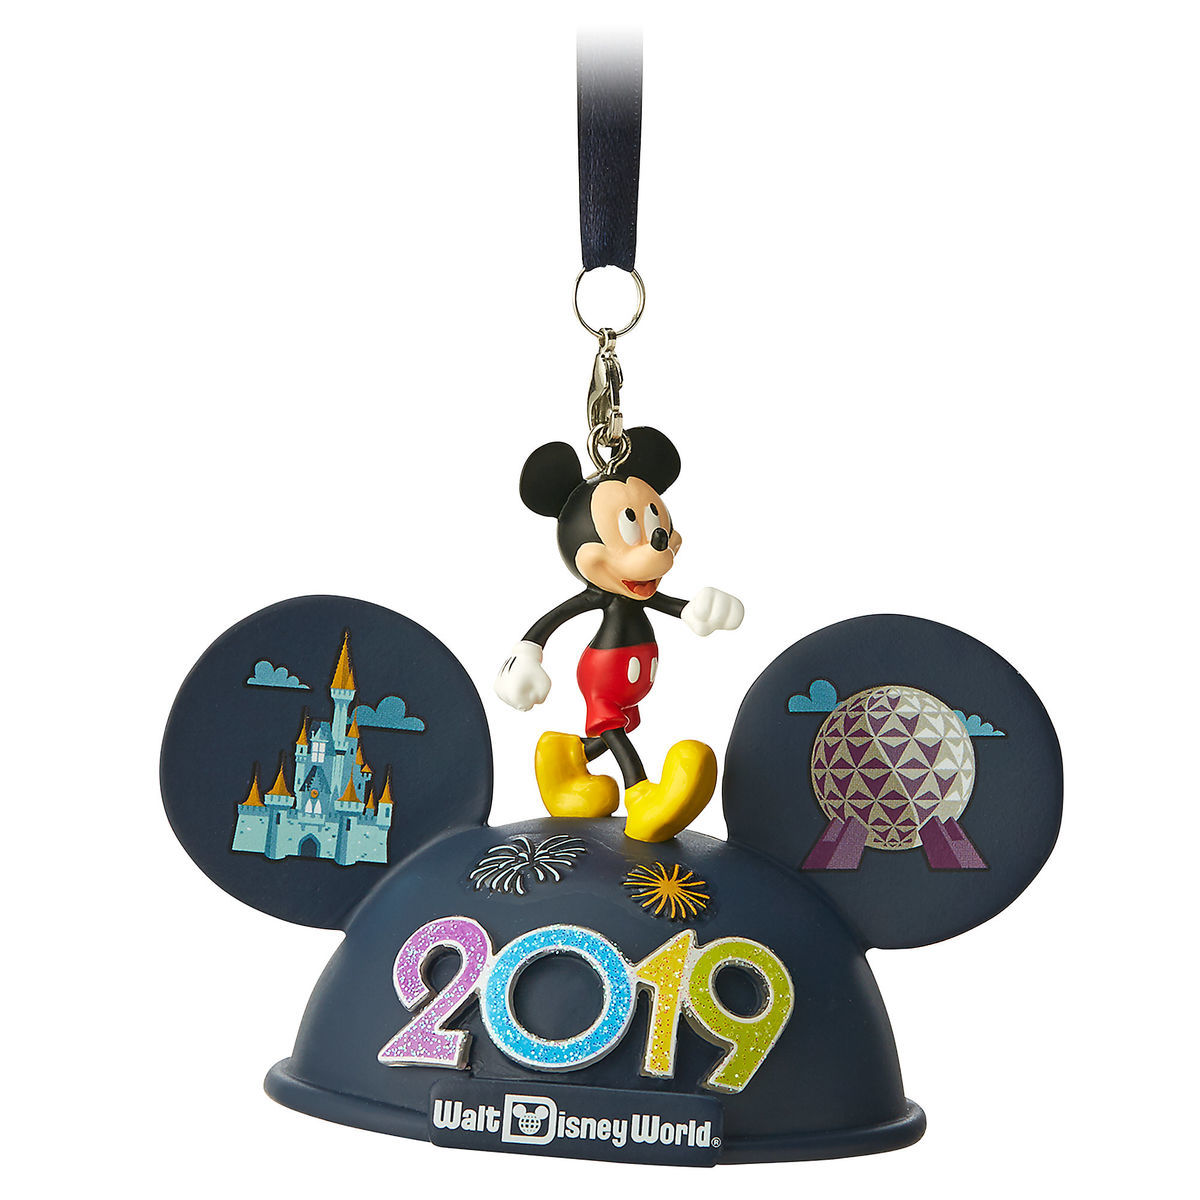 2019 Merchandise Hitting the Shelves and Shop Disney 2